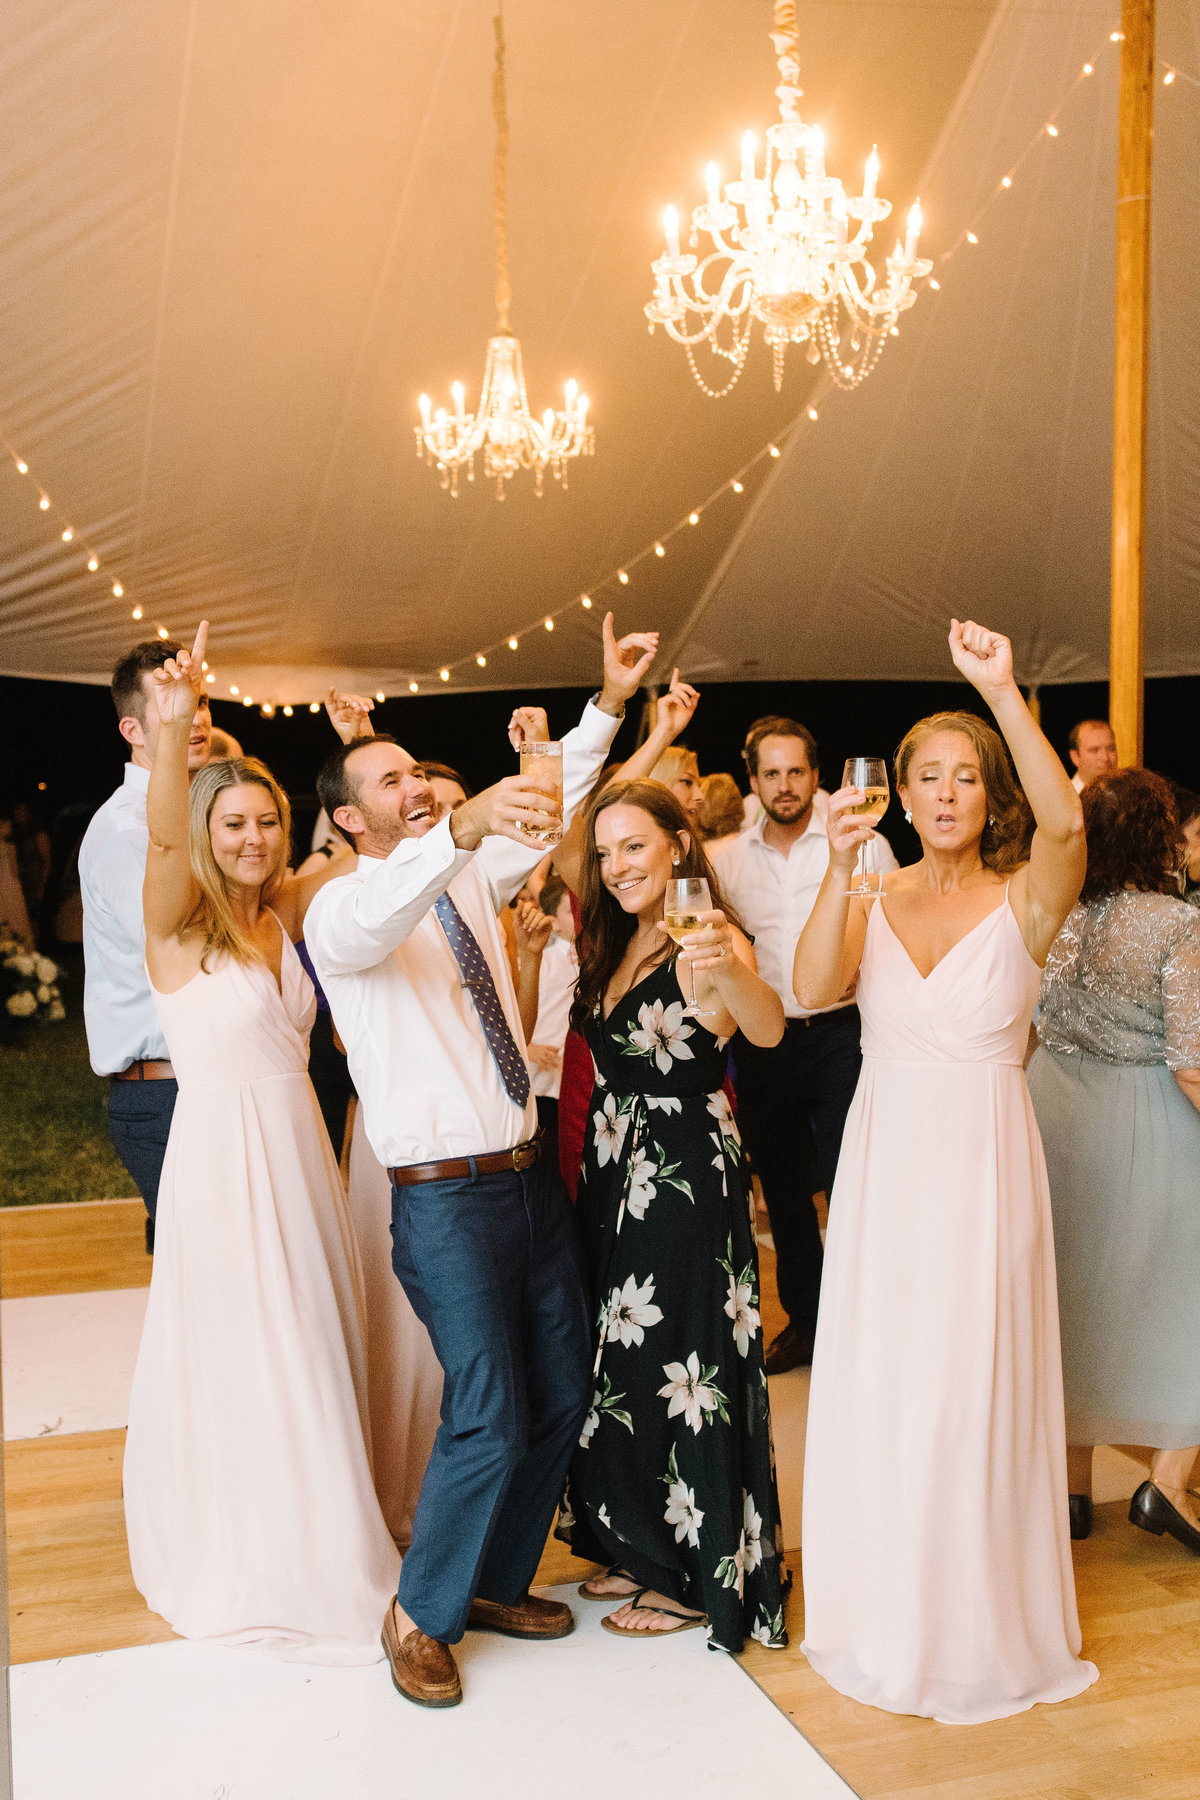 Wedding Guests dancing on Birch Wood and White checkered Dance Floor under Sailcloth Tent with Cafe Lighting and Crystal Chandeliers